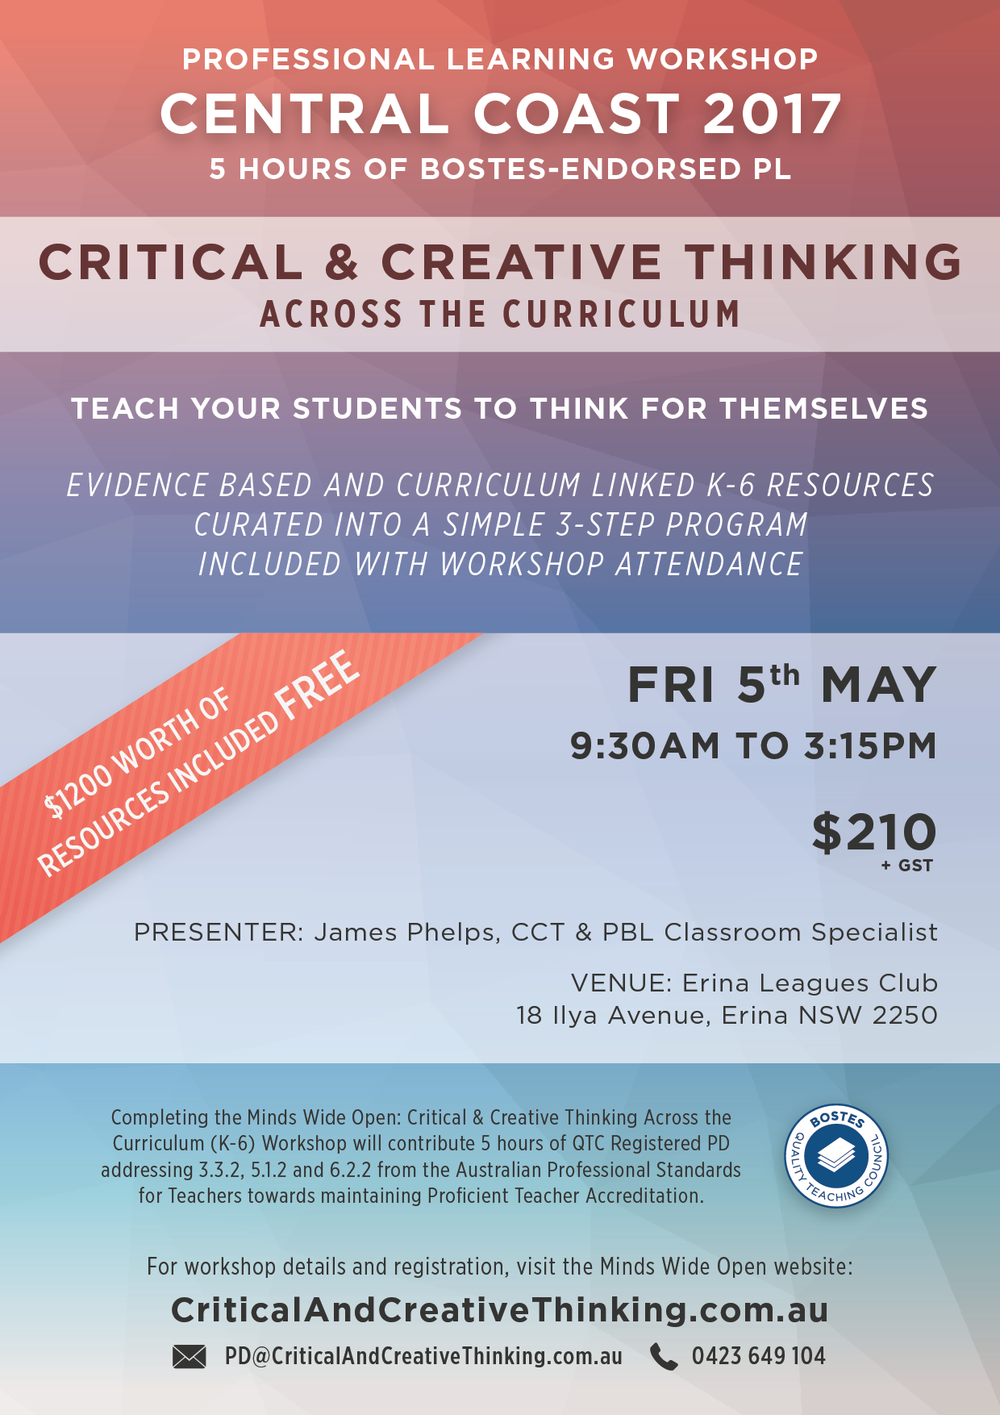 Central Coast CCT Workshop Flyer